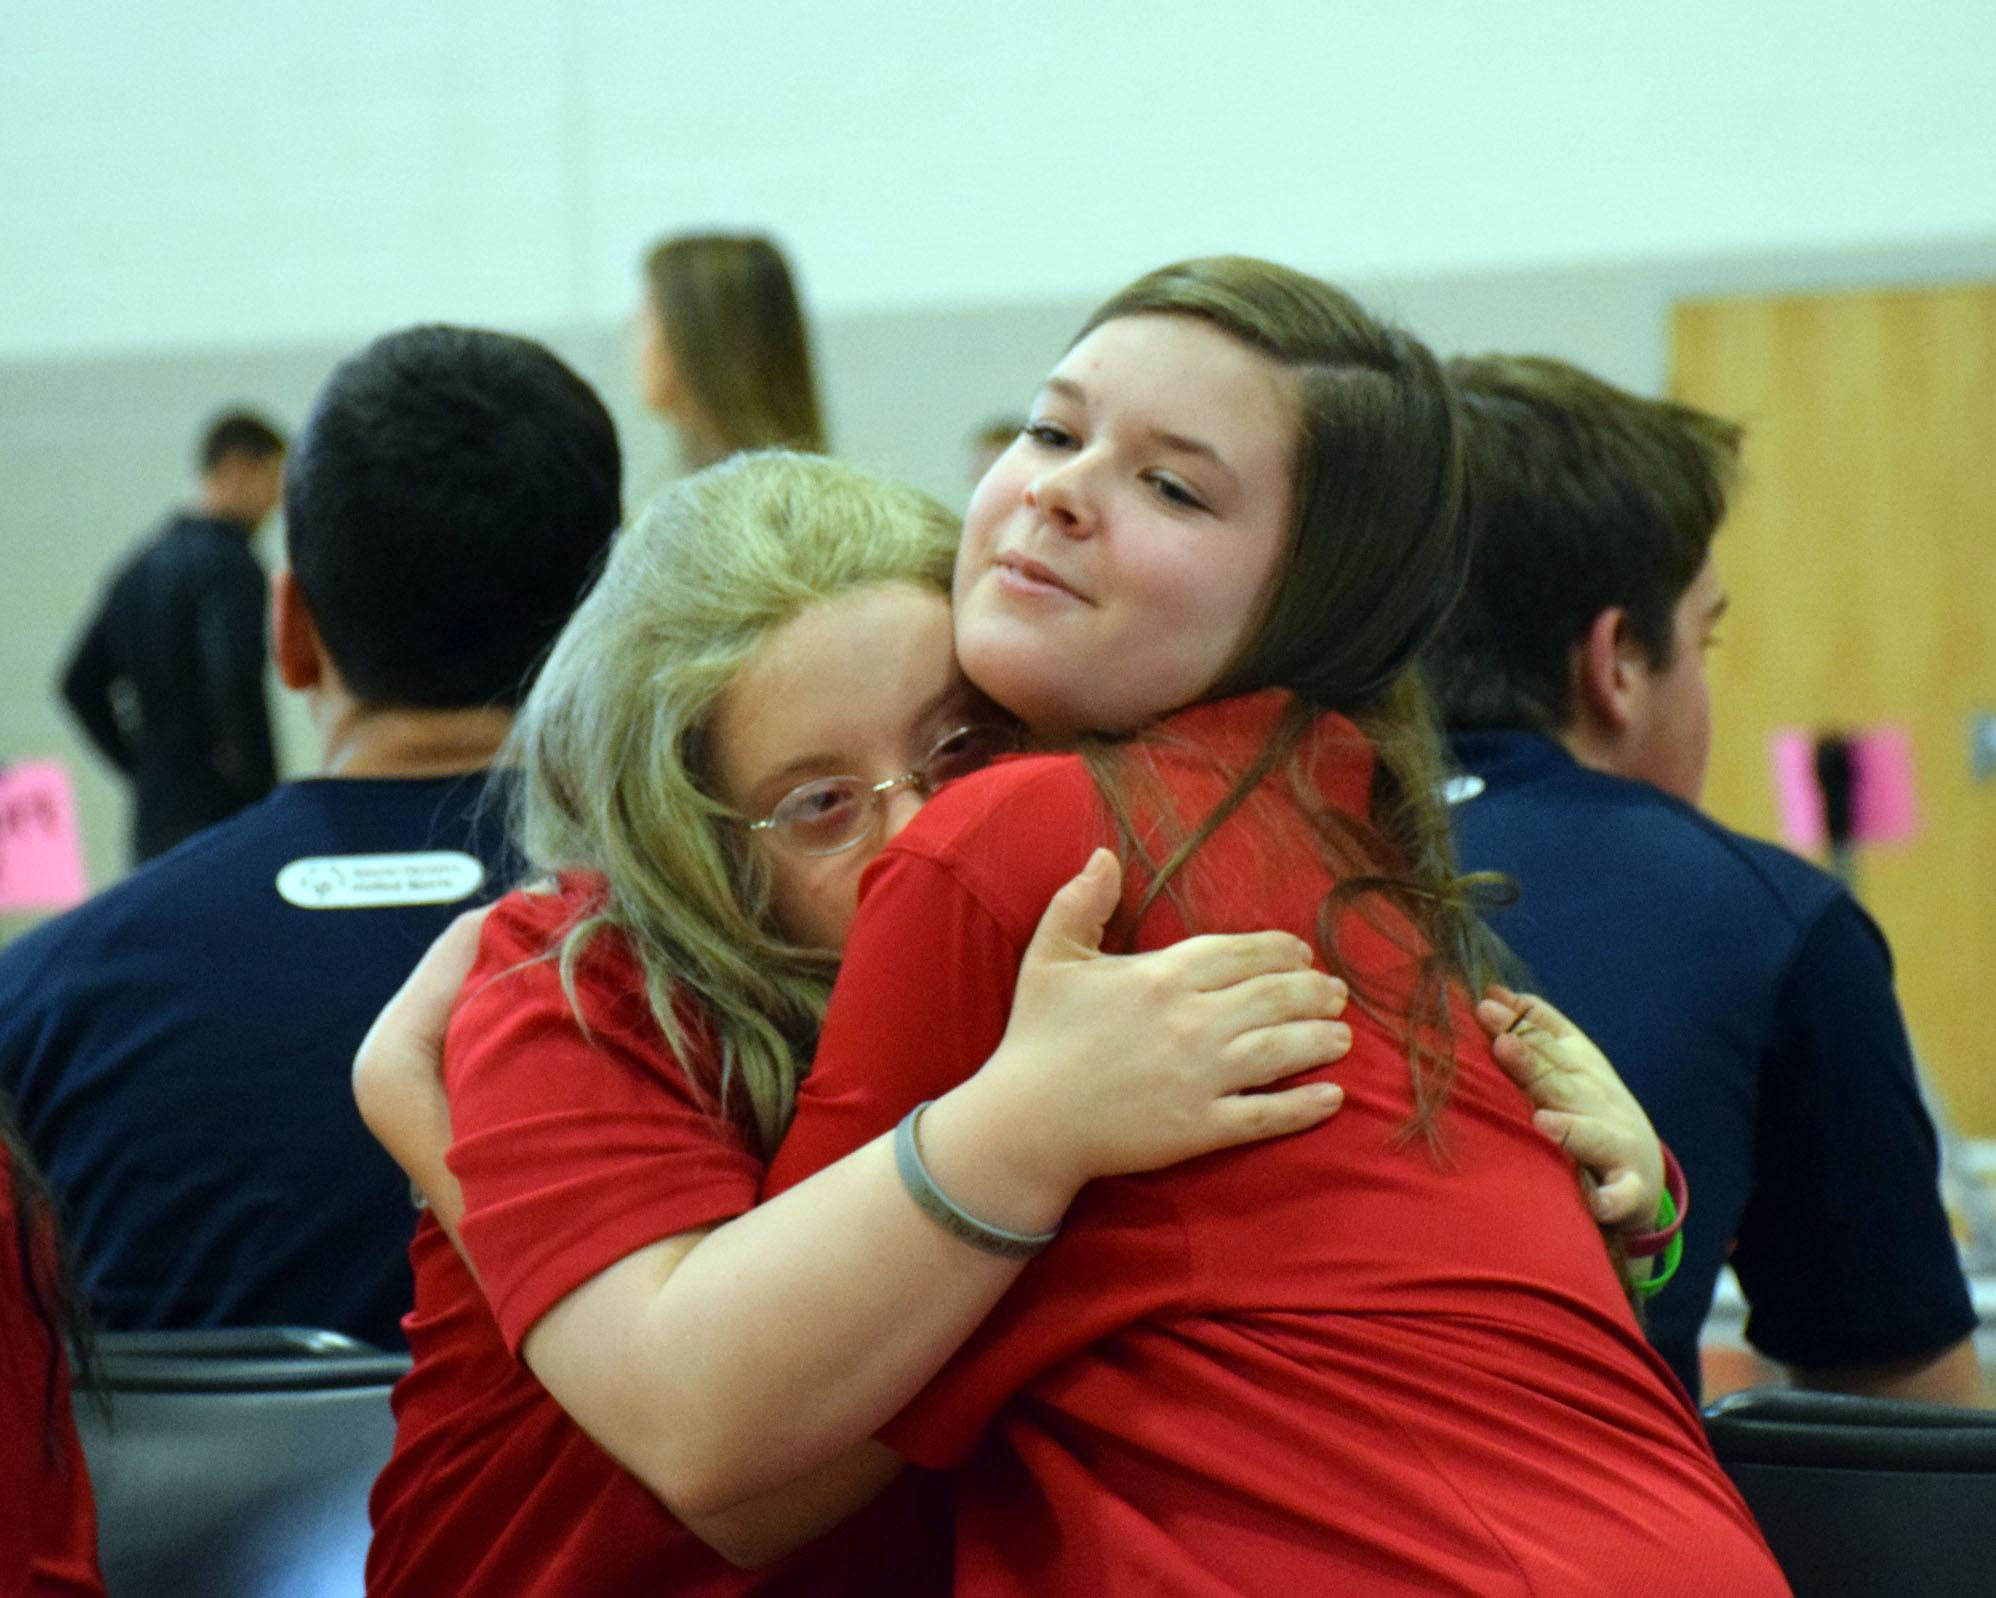 Sarah Webber (left) and Gabby Wolfe (right) share a hug after their tournament.